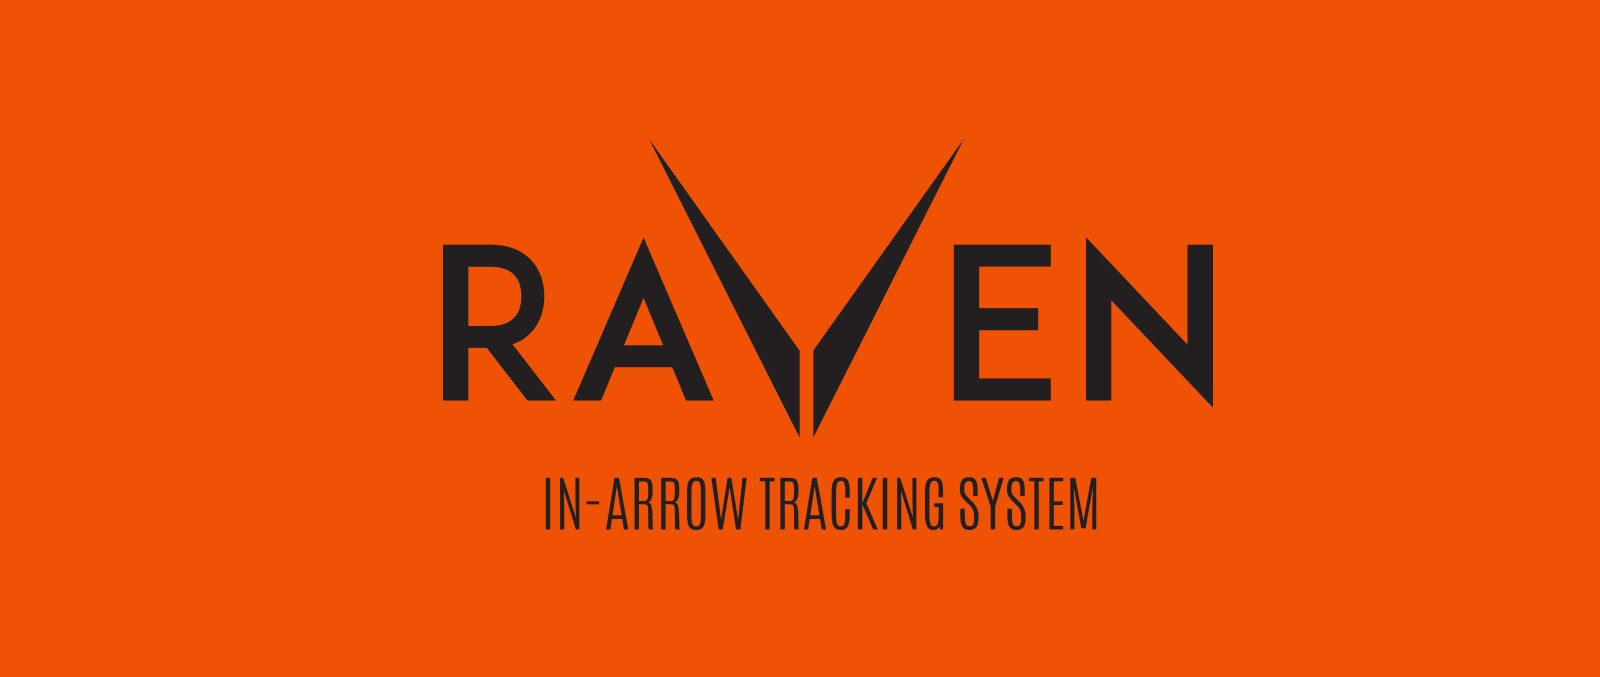 Raven In-Arrow Tracking System